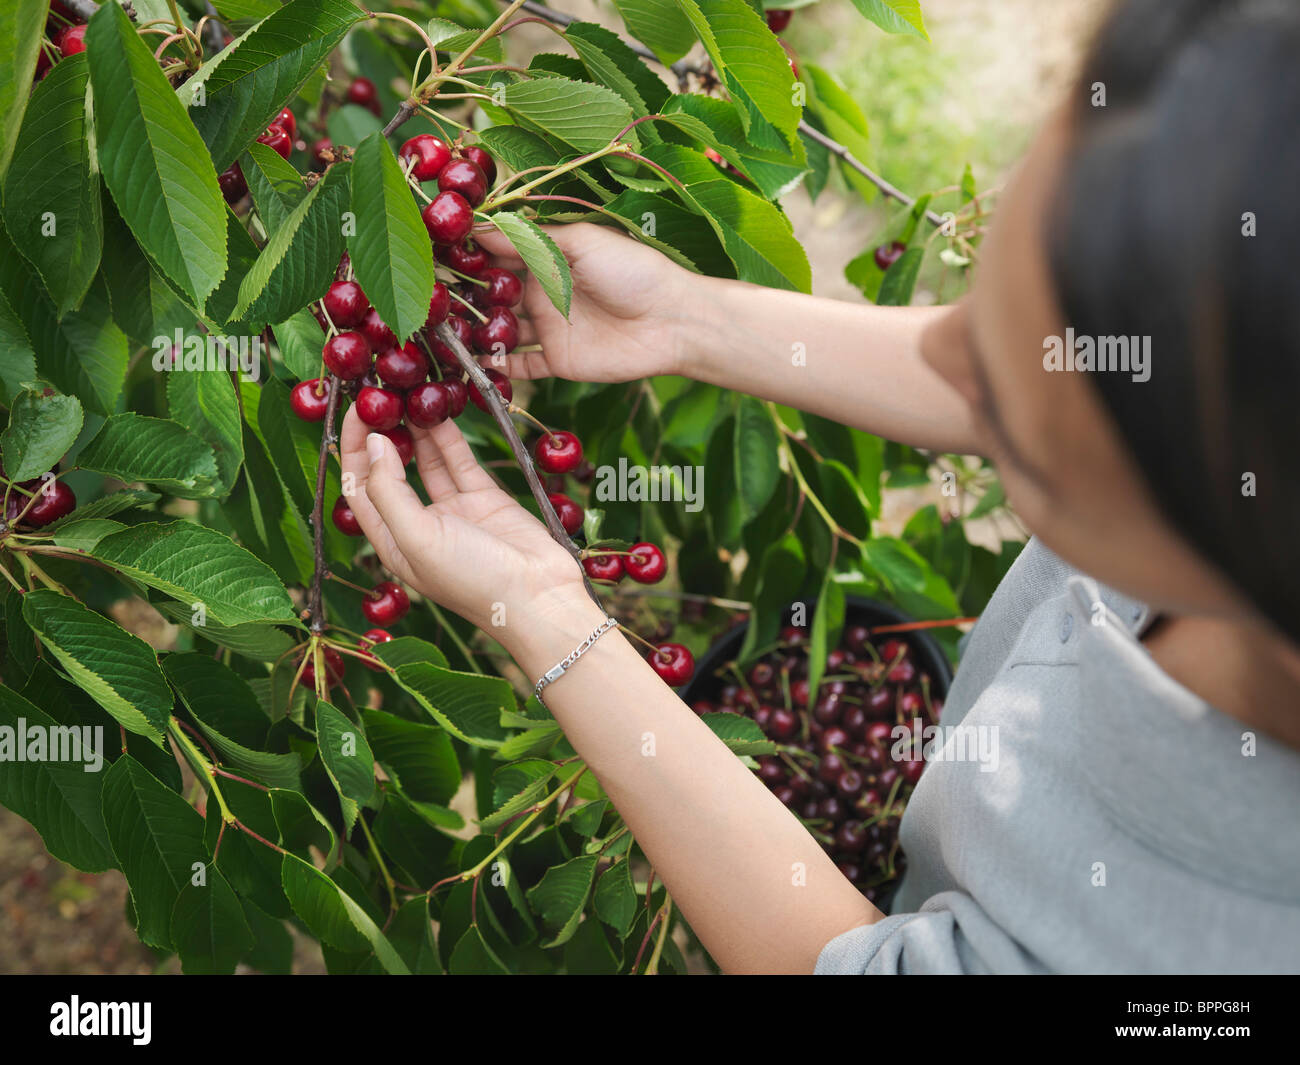 Woman picking cherries from tree - Stock Image